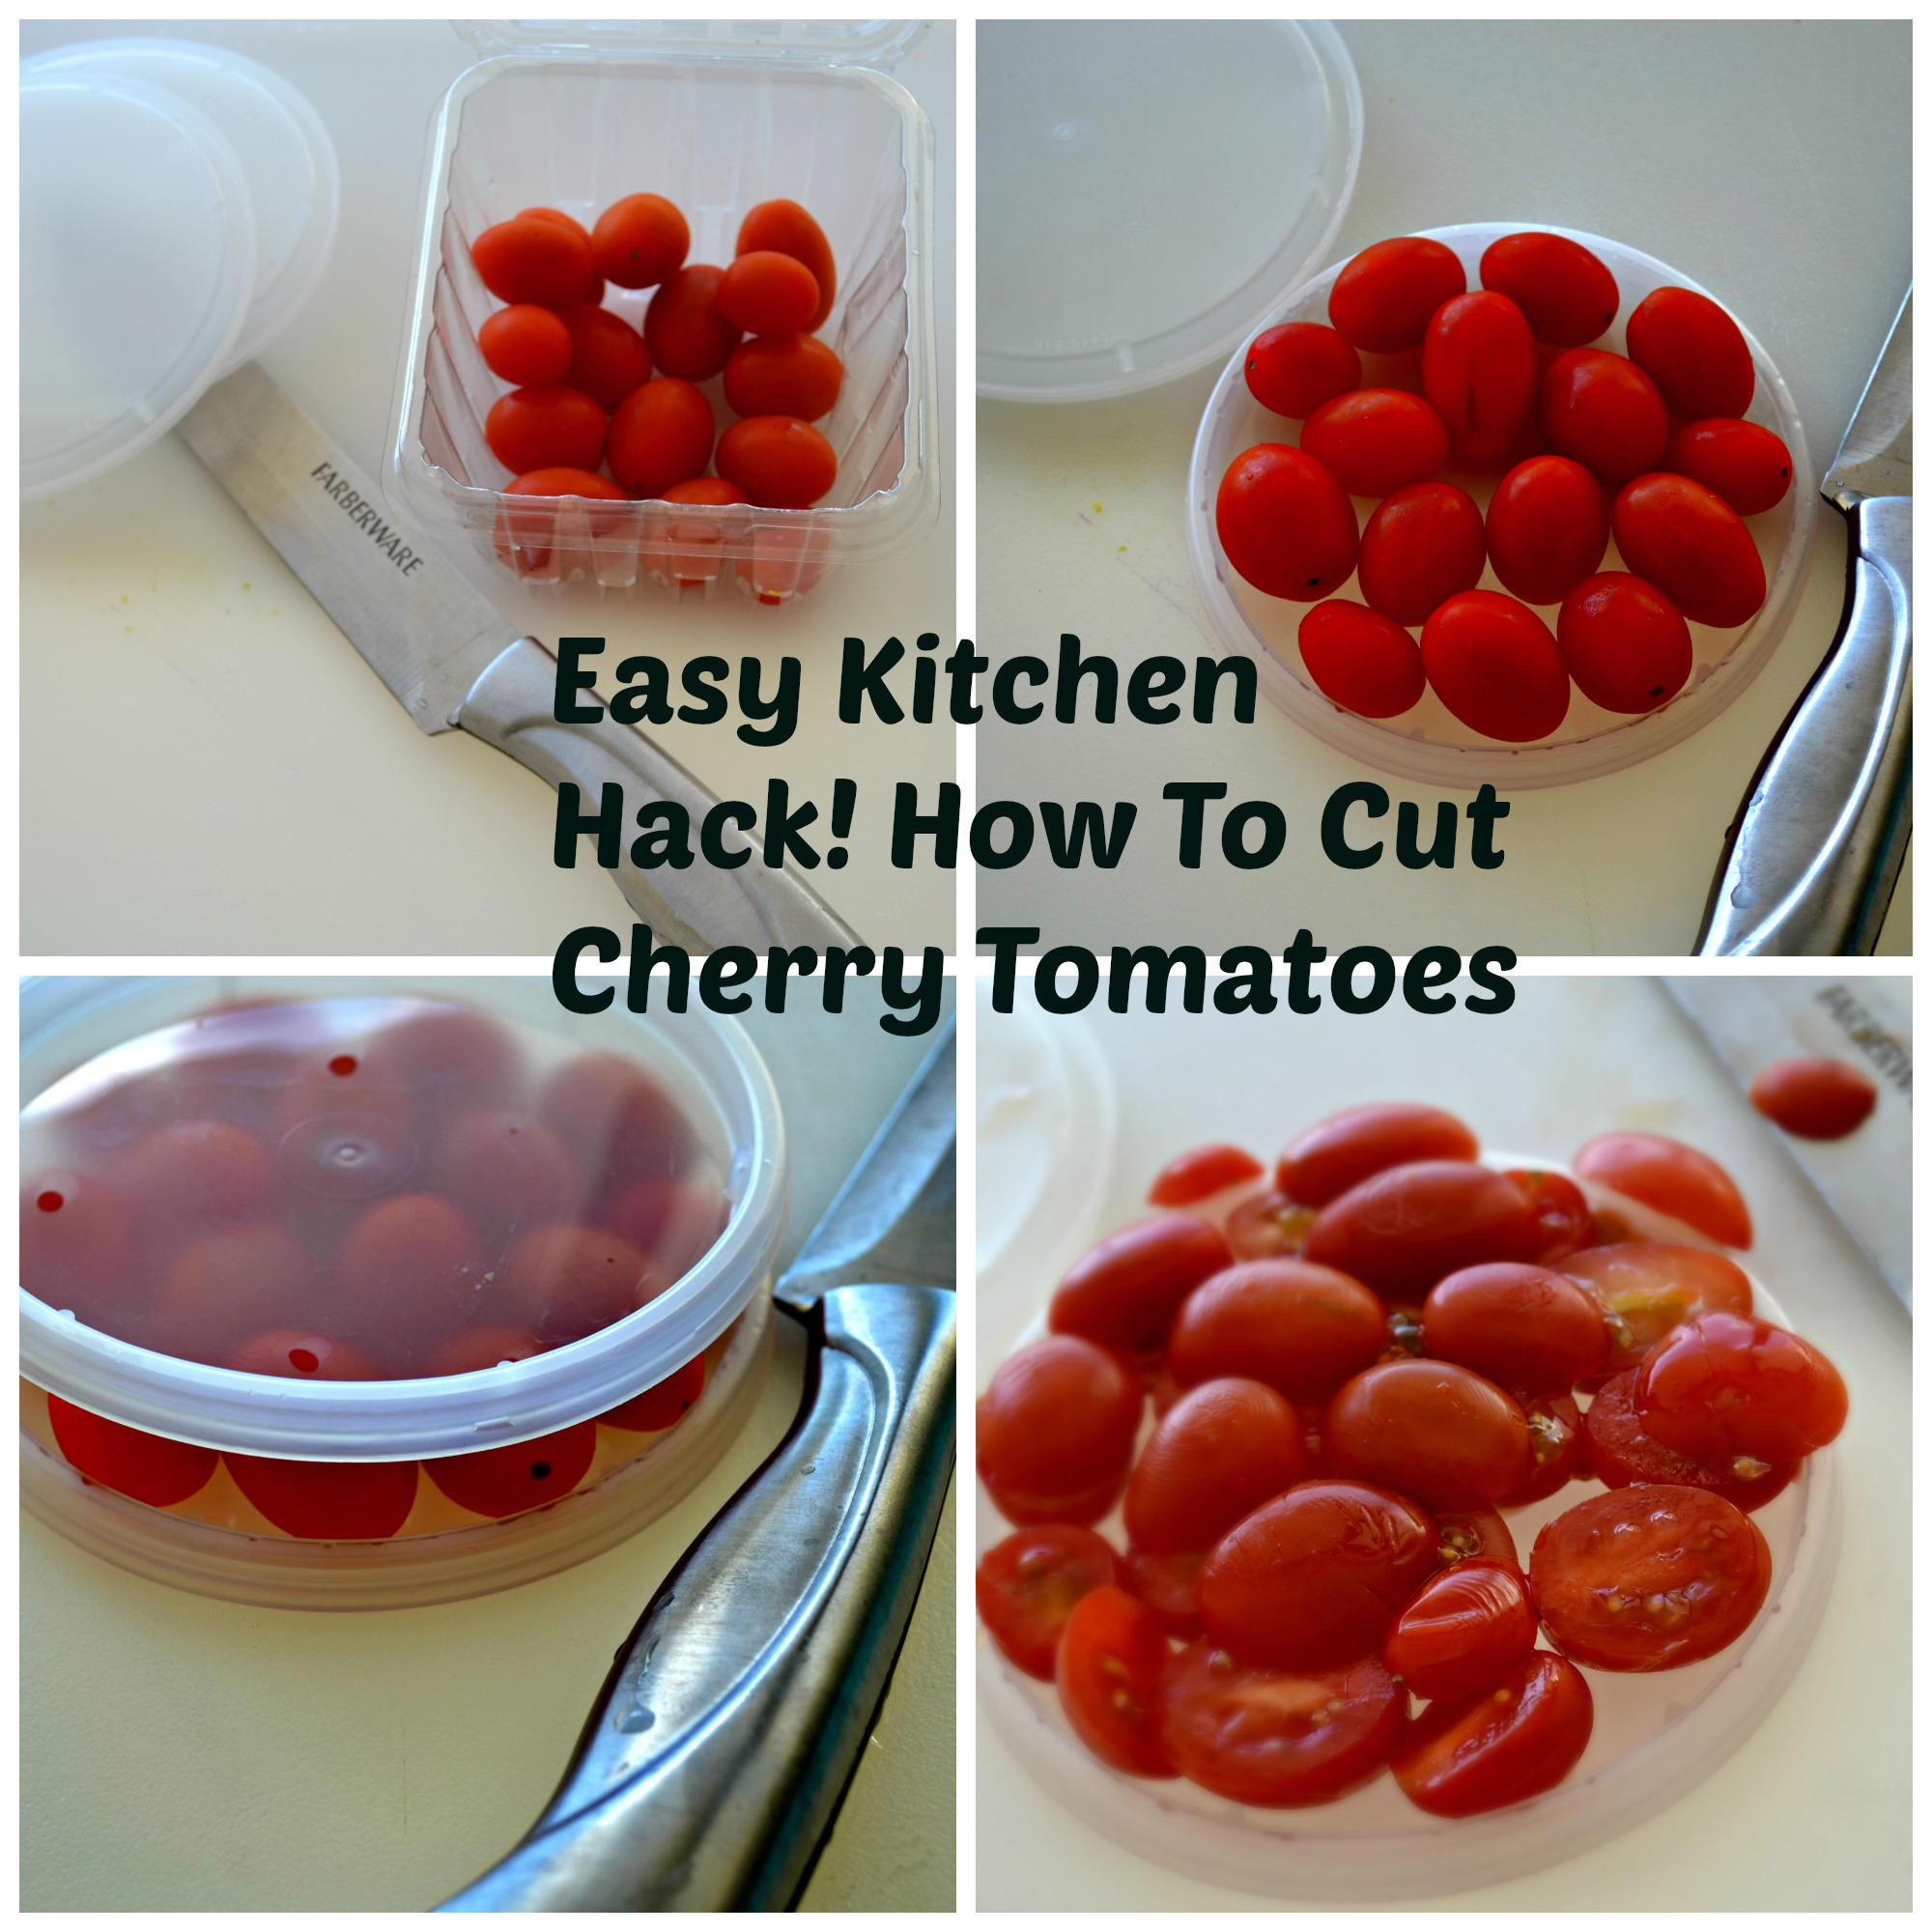 How to cut cherry tomatoes kitchen hack